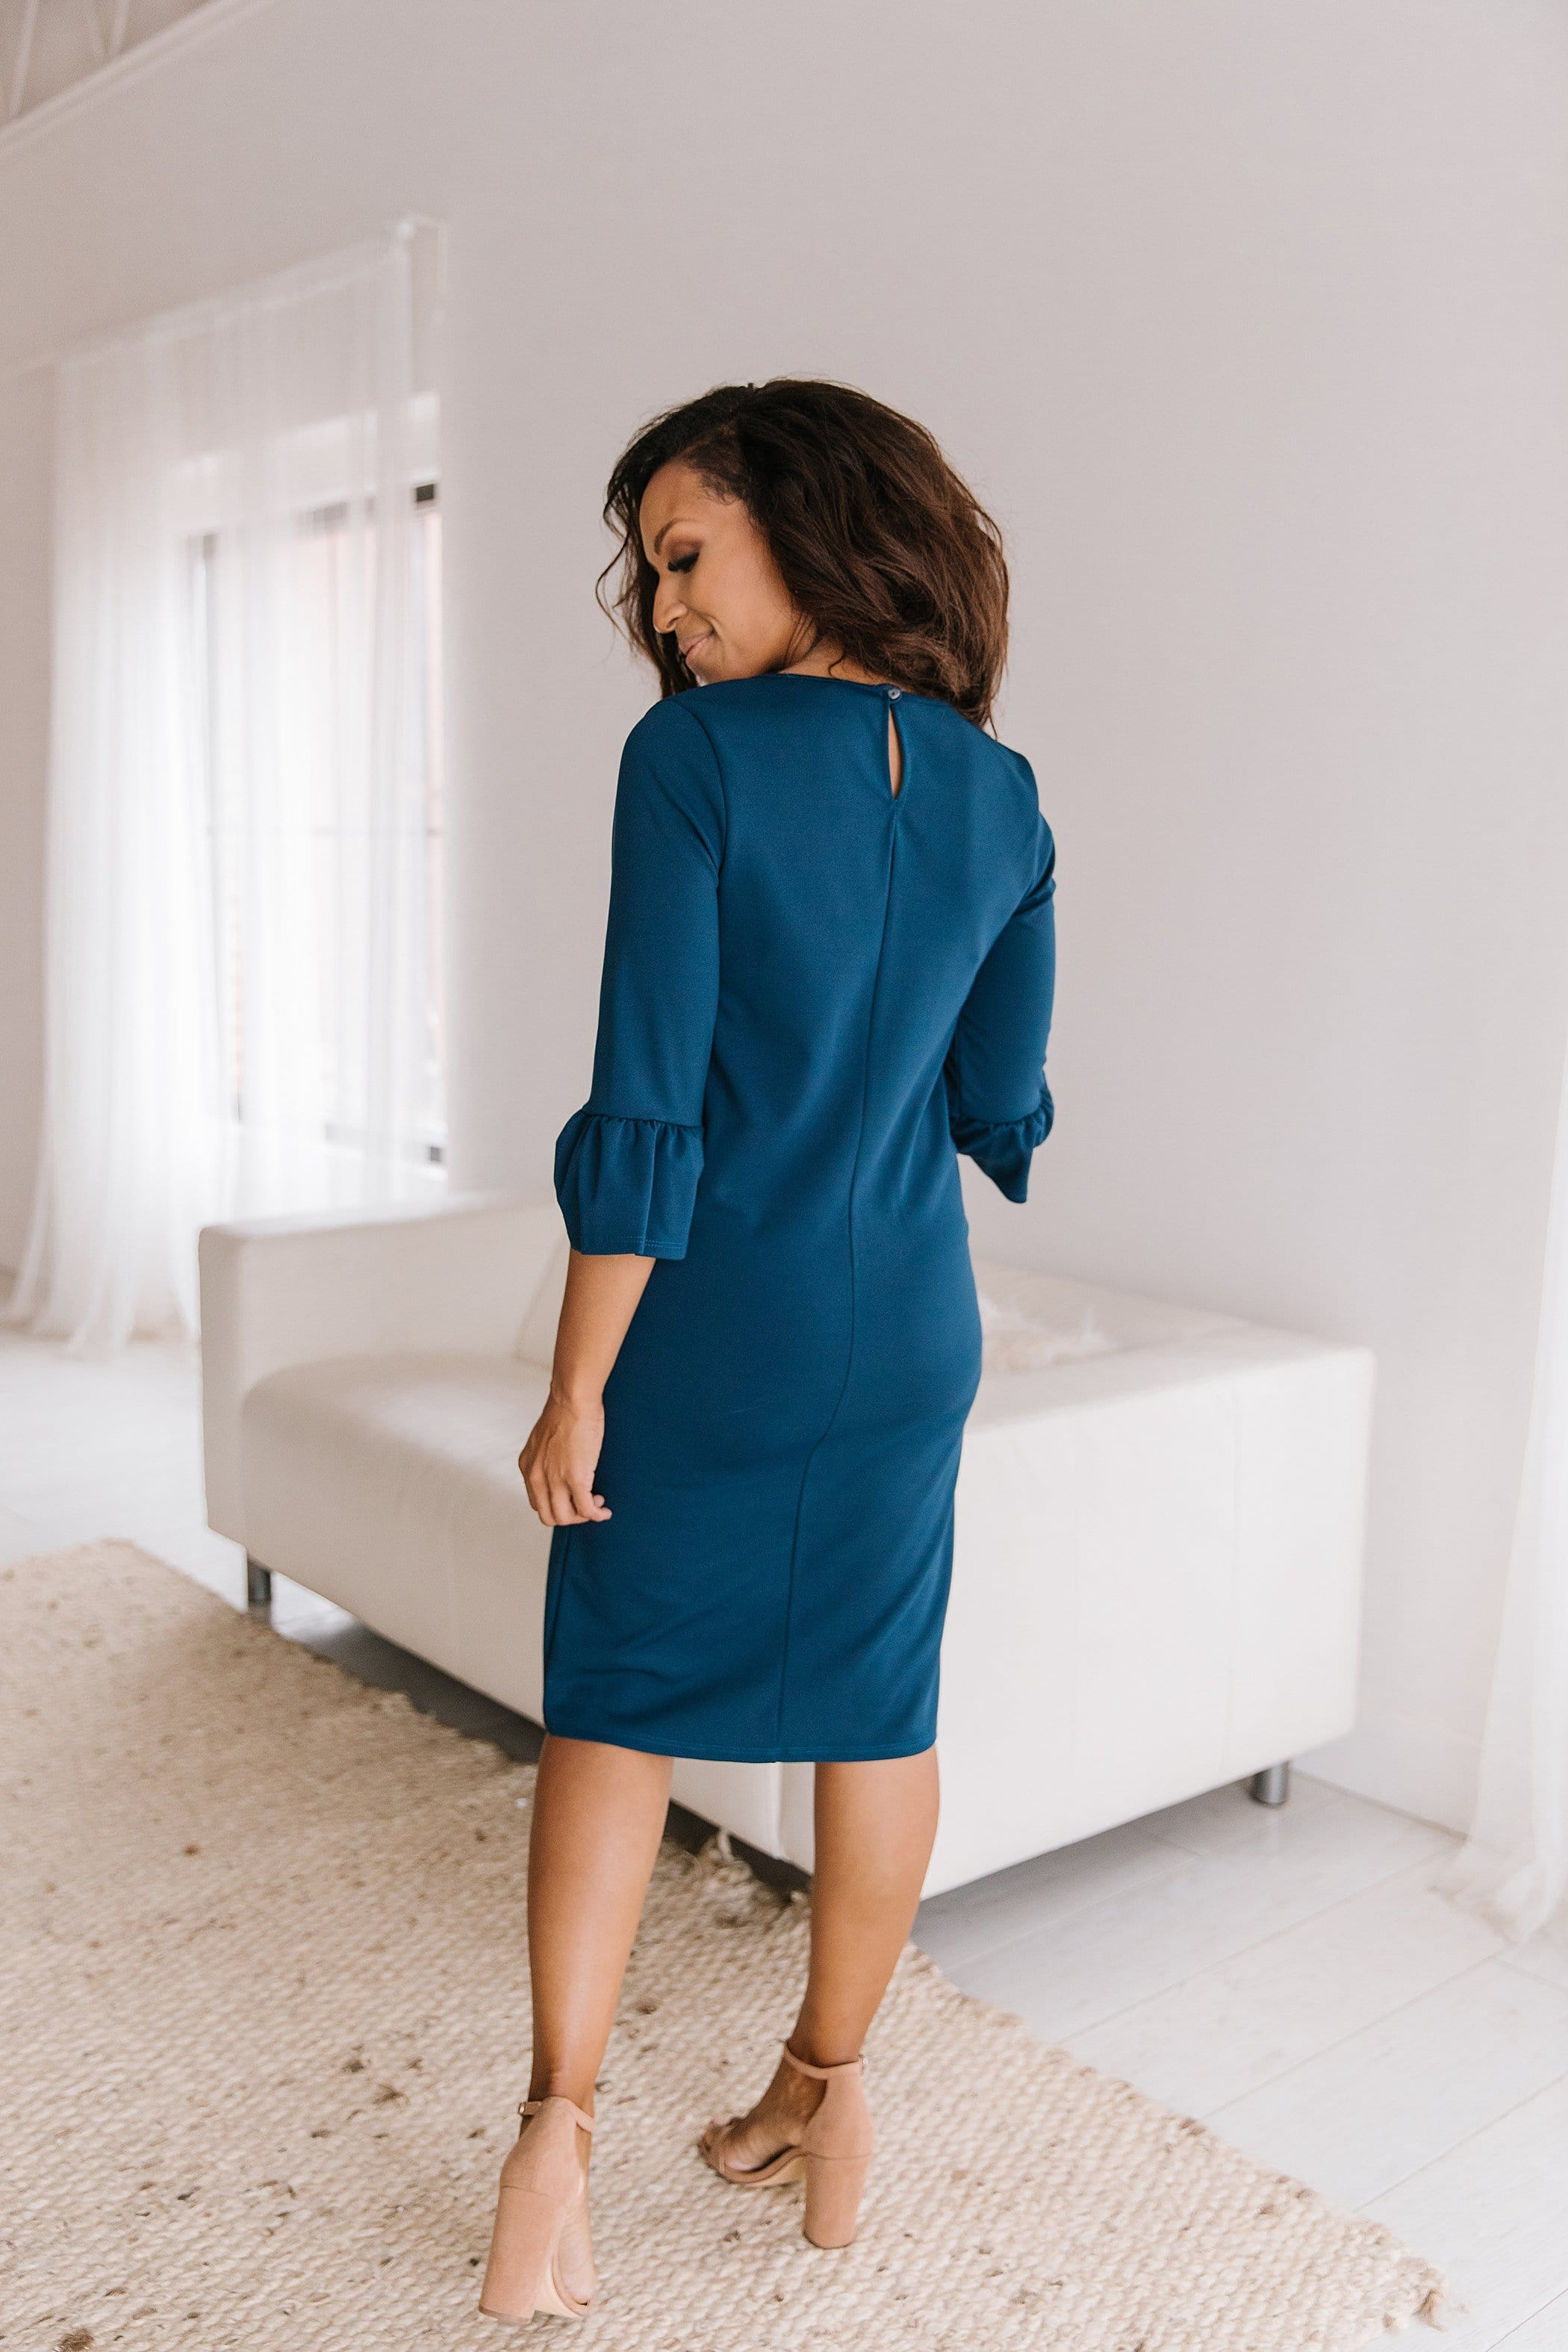 The Corrie Shift Dress in Teal